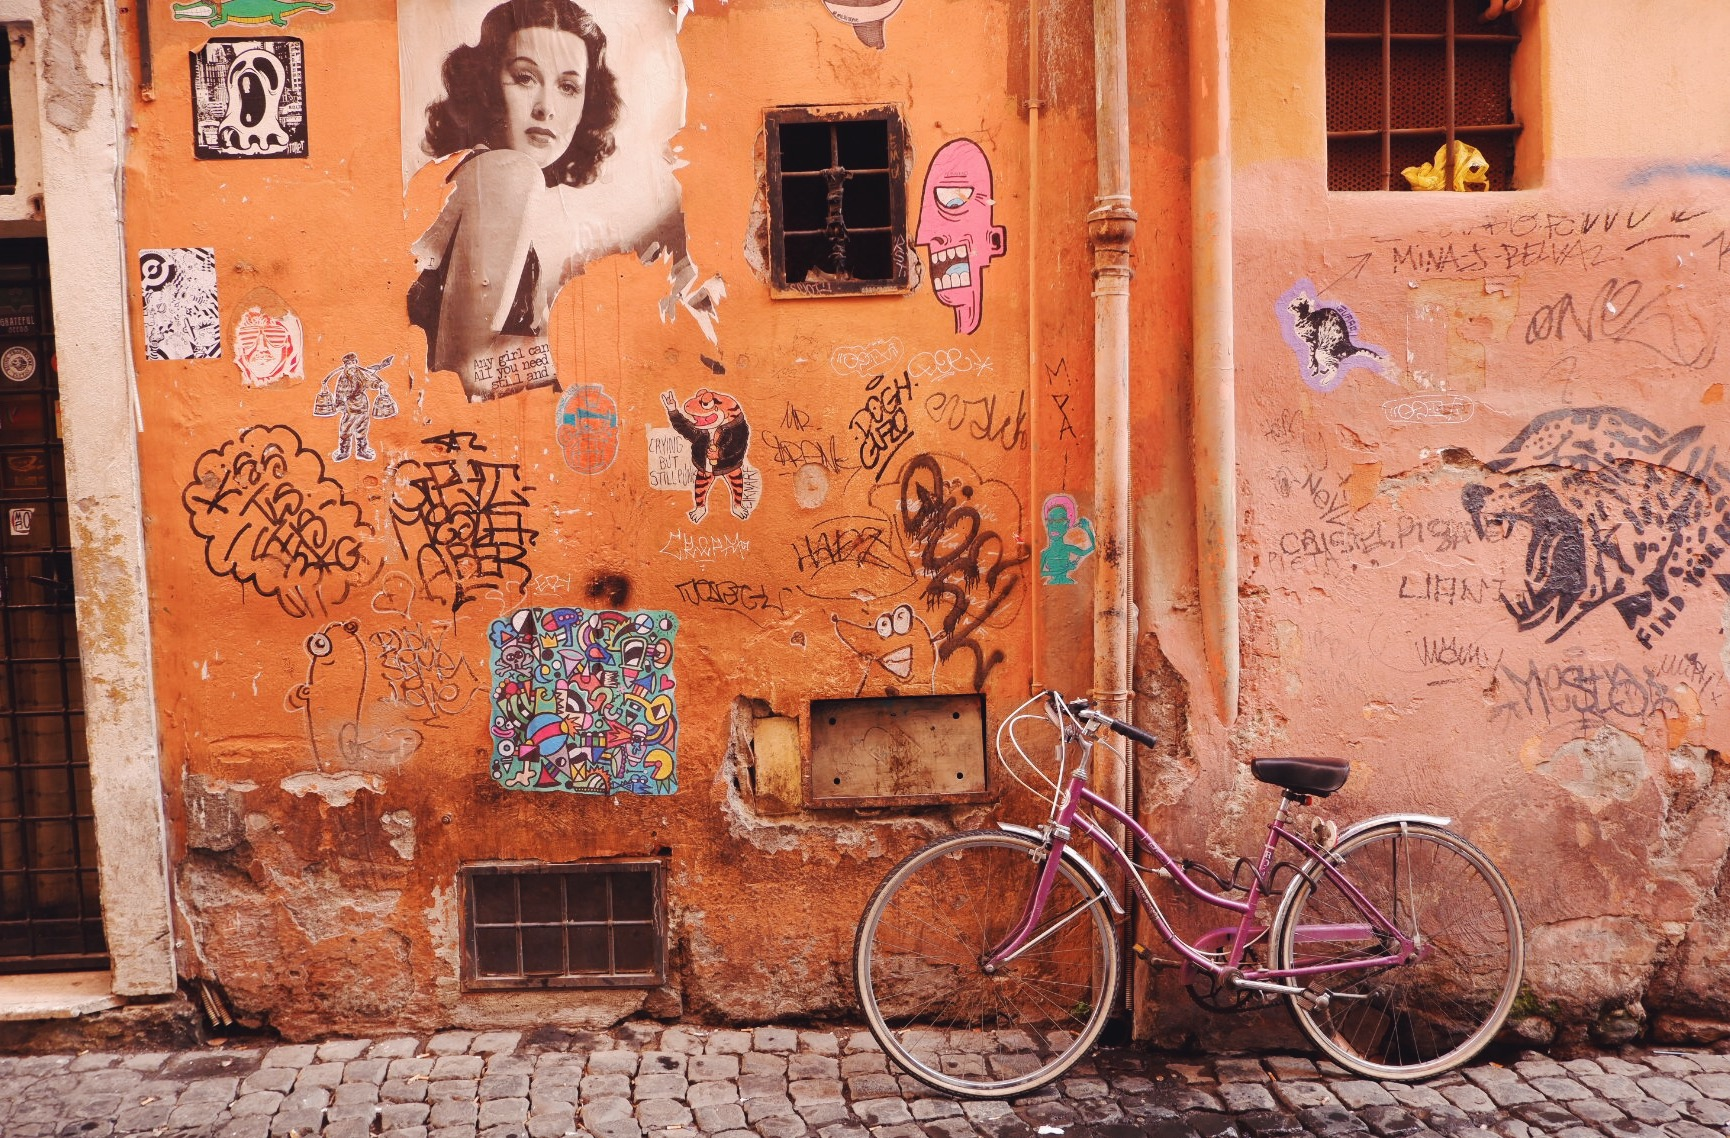 A bicycle in Trastevere, Rome, Italy